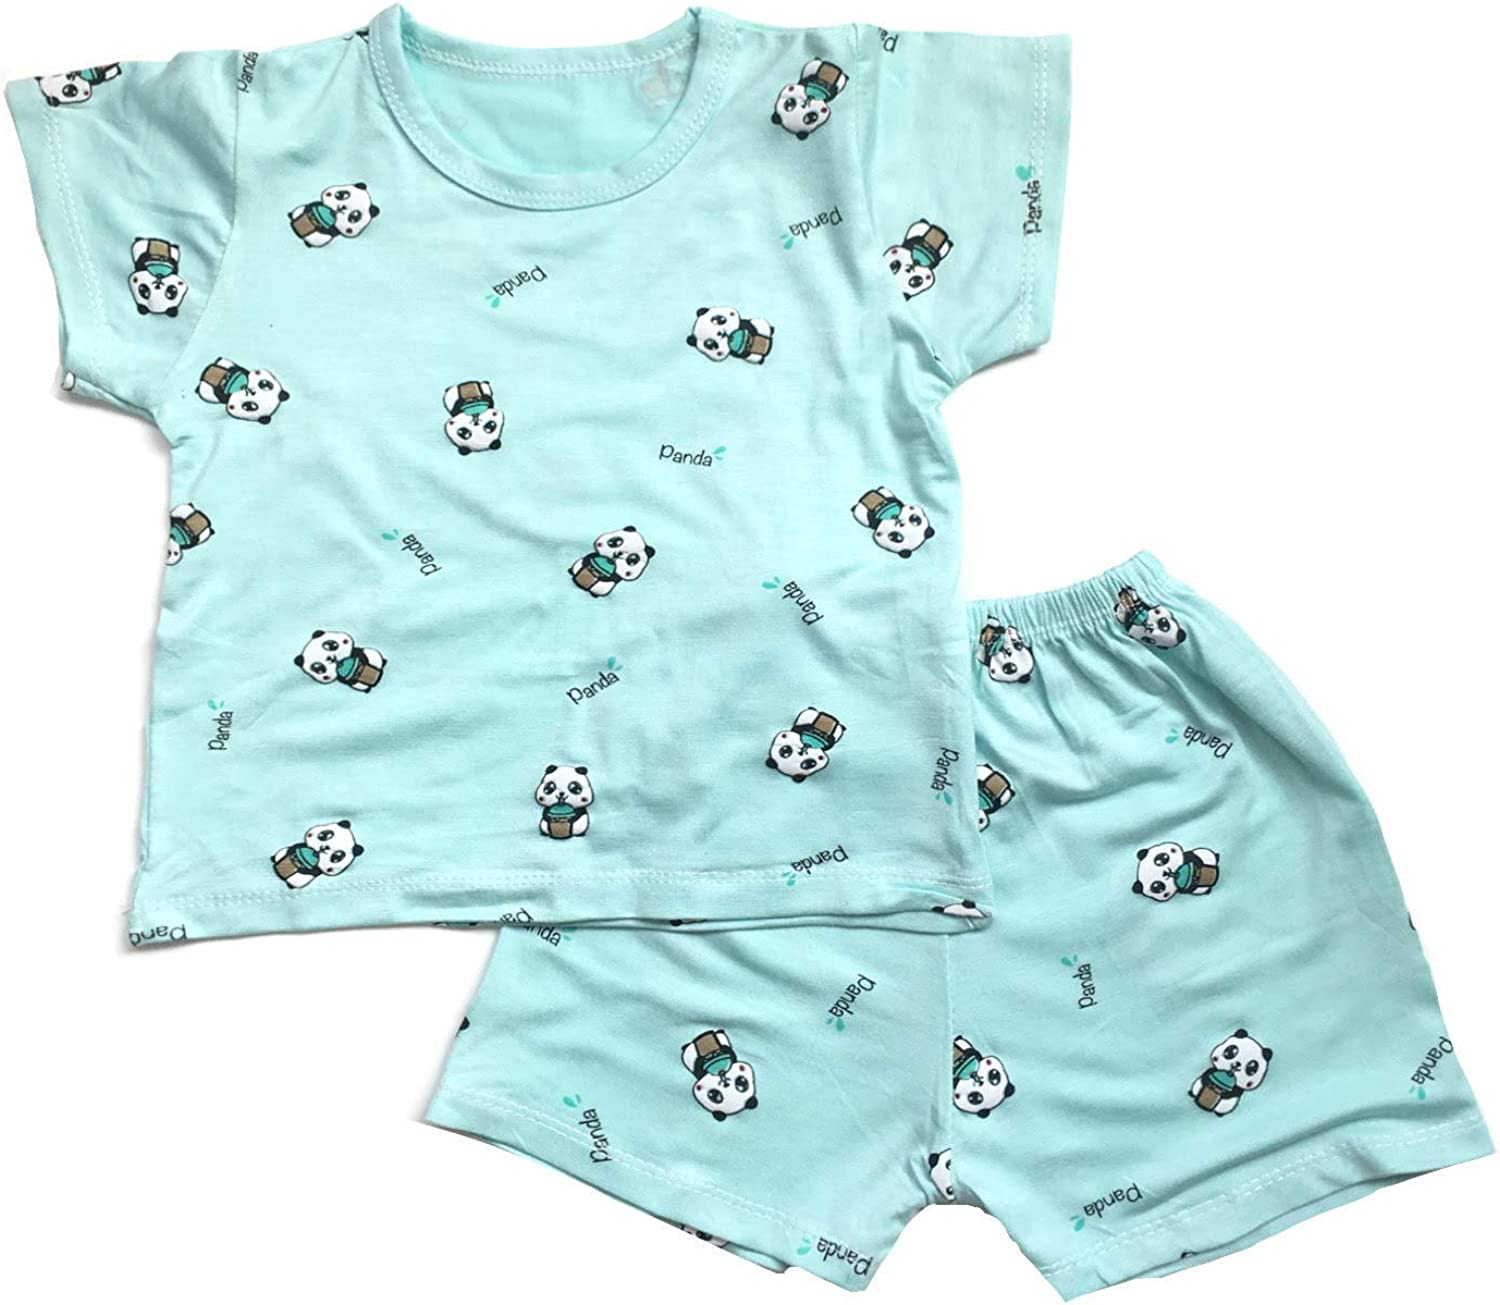 Unisex Toddler Baby Summer Cotton Stretchy Outfit Set 2-Piece Panda Graphic (12M-4T)